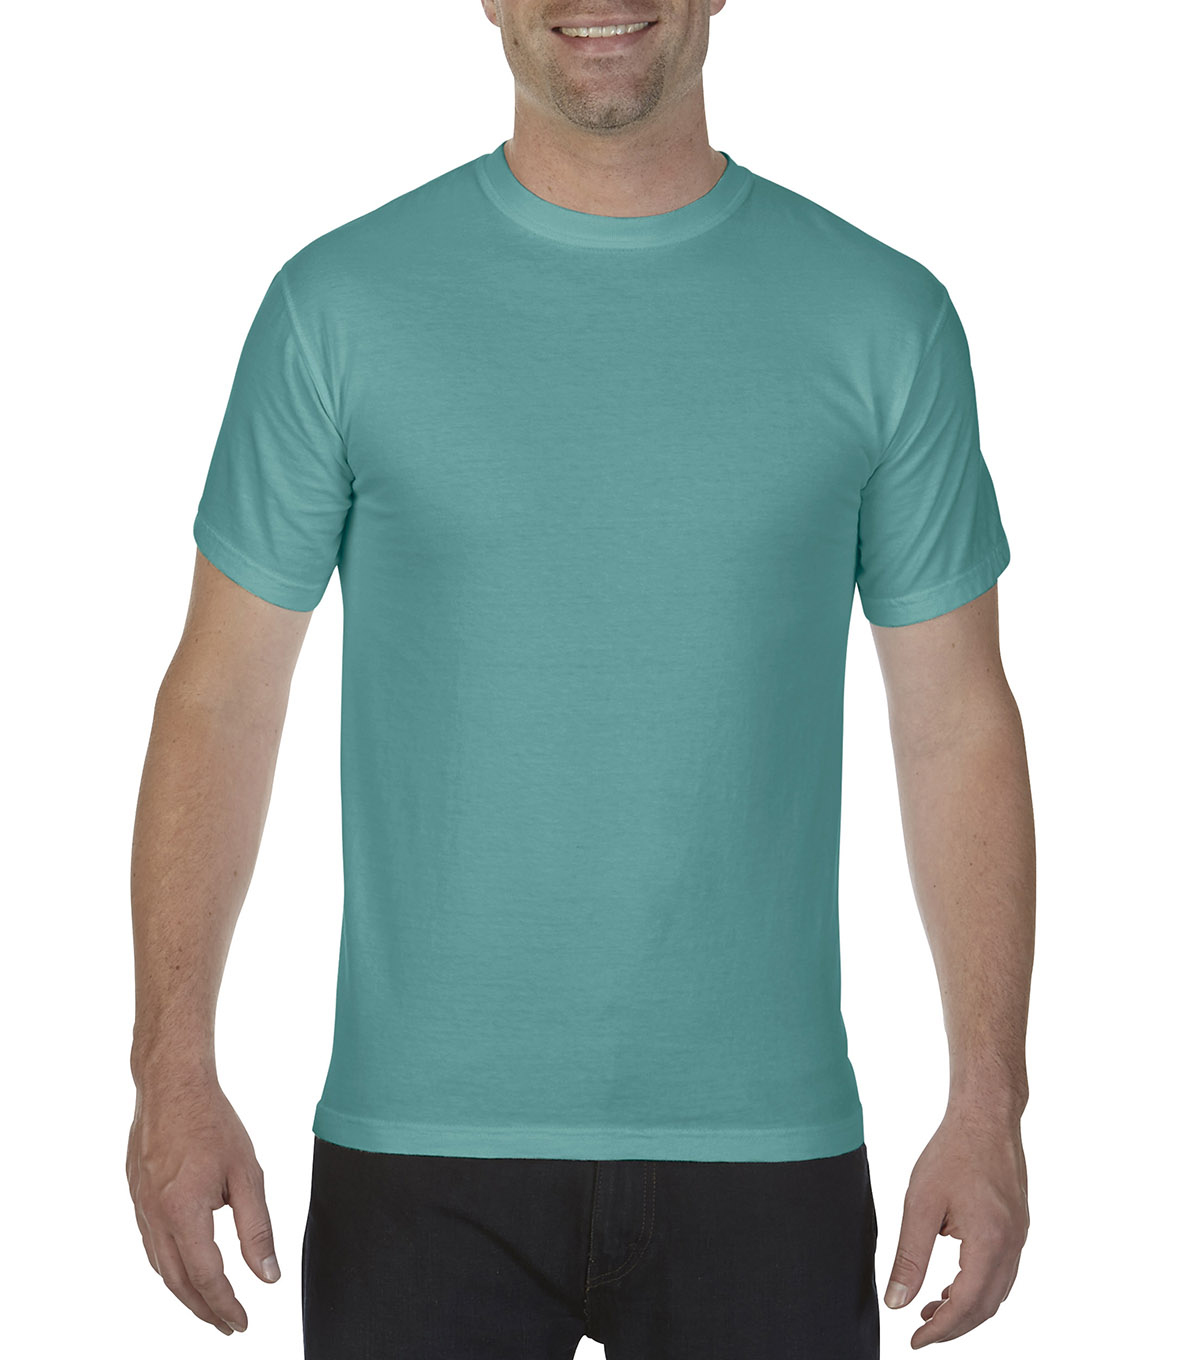 Adult Comfort Colors T-shirt-Medium, Seafoam